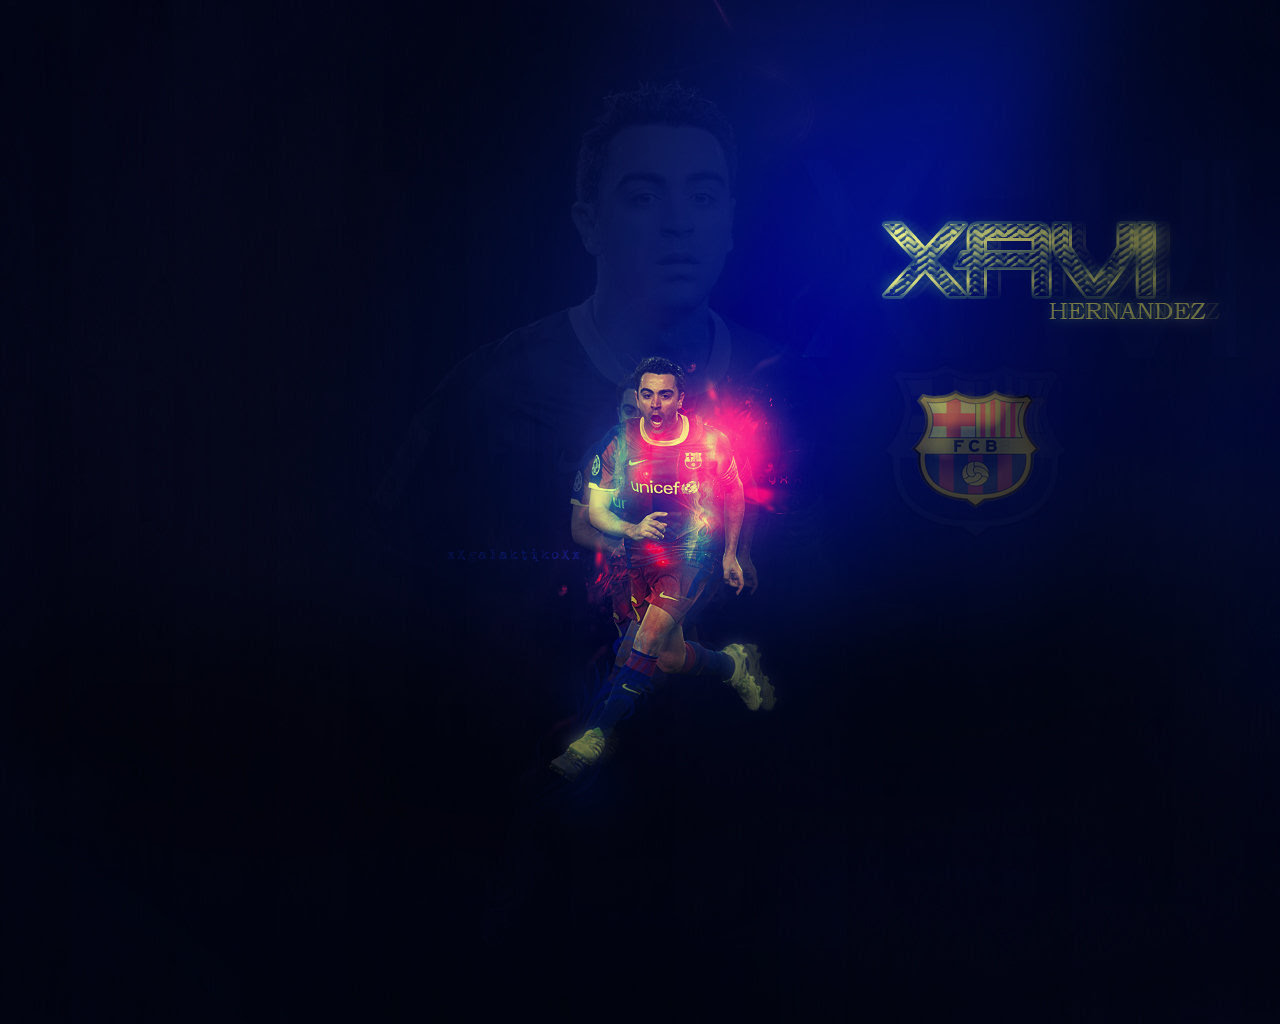 Fc Barcelona Wallpapers Hd 1080p